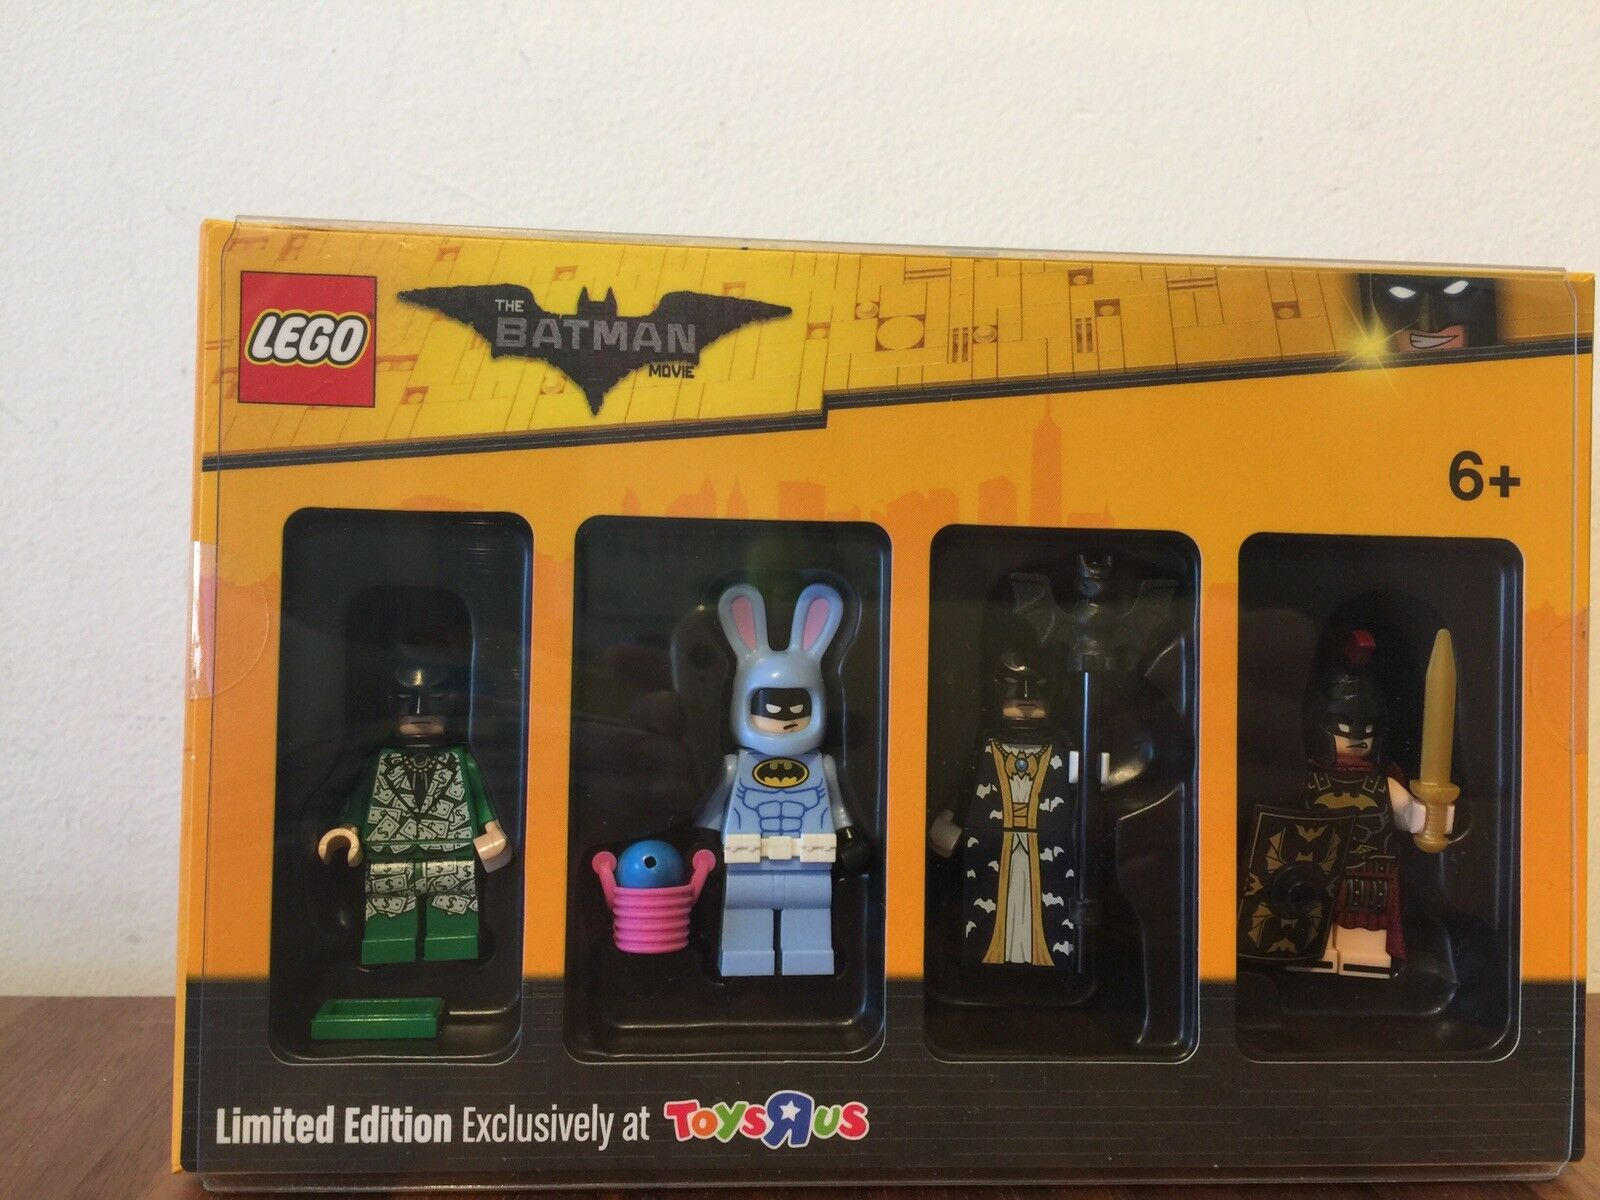 Lego Minifigure Toys-r-us 2017 Exclusive Limited Edition Complete (New Unopened)